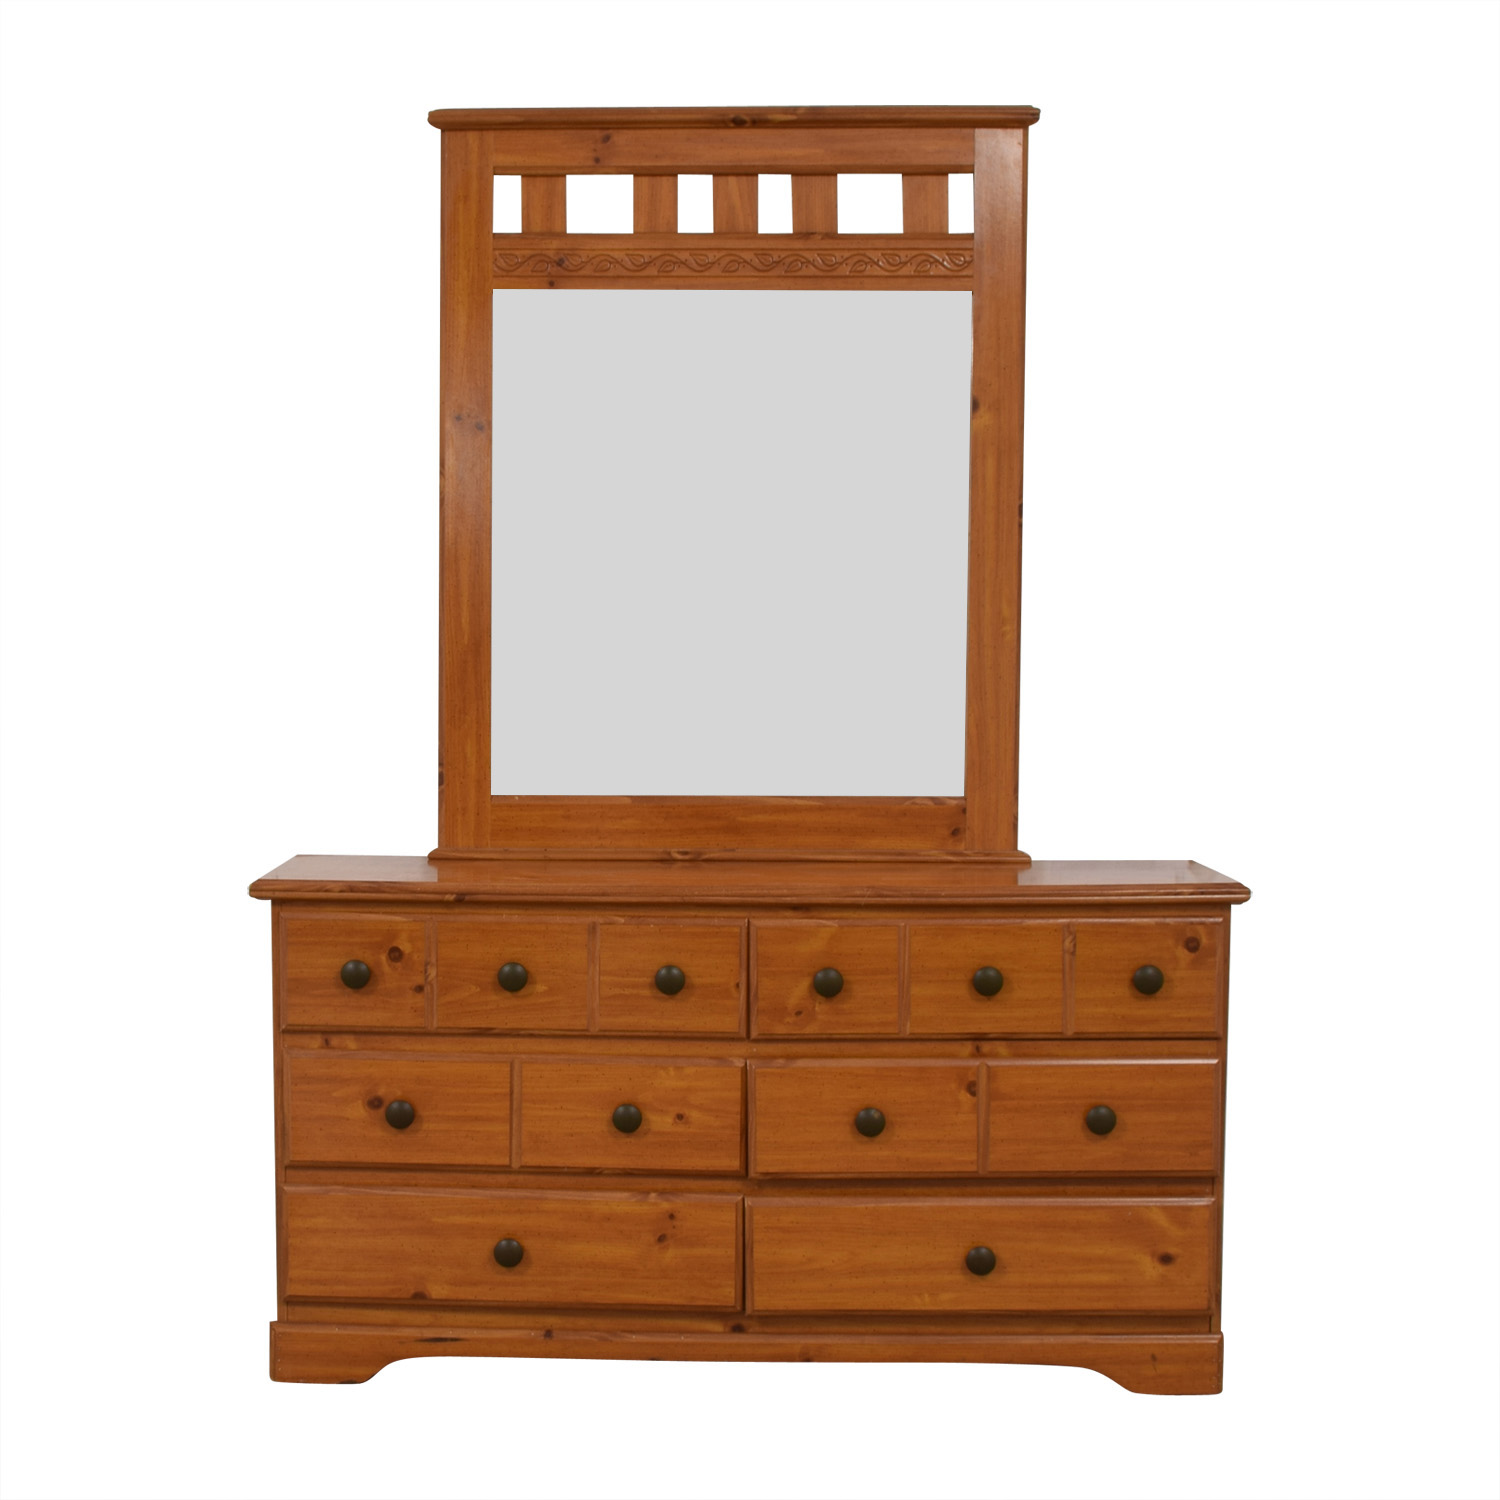 Wood Six-Drawer Dresser with Mirror second hand